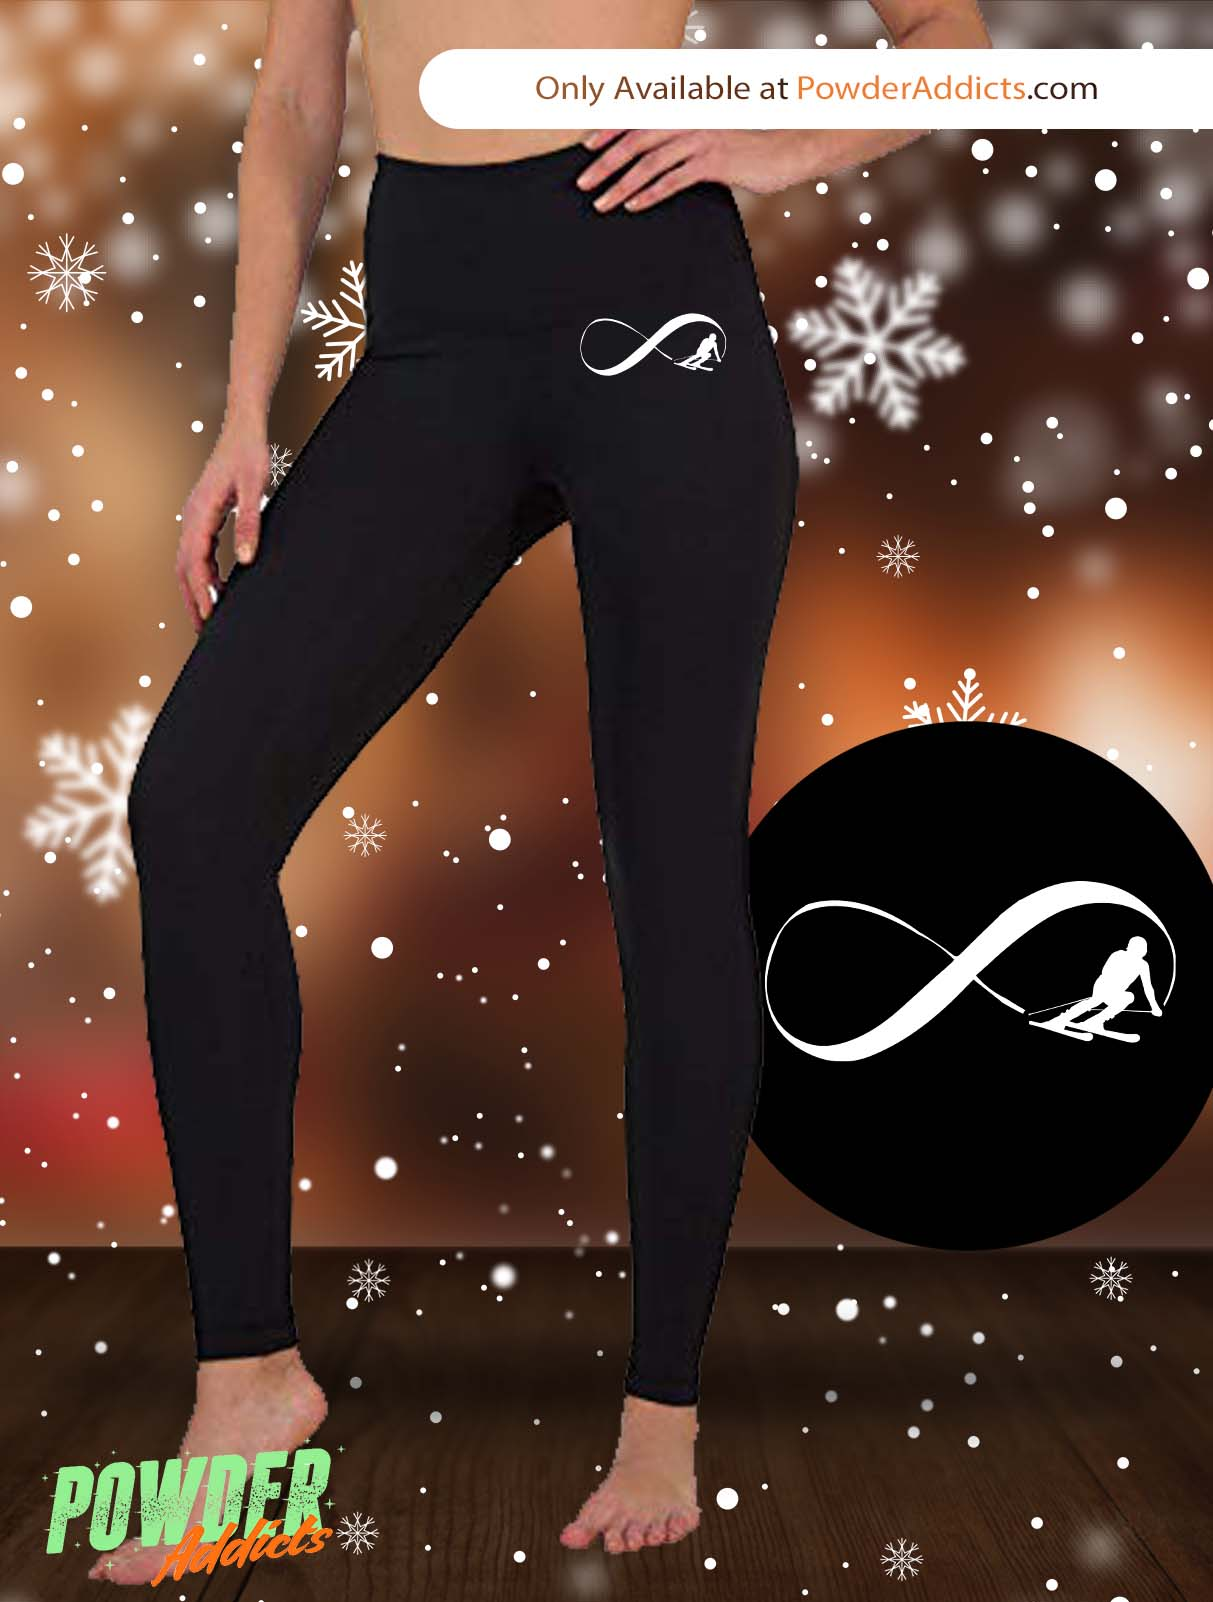 Infinity Ski Women's Embroidered Leggings - Powderaddicts